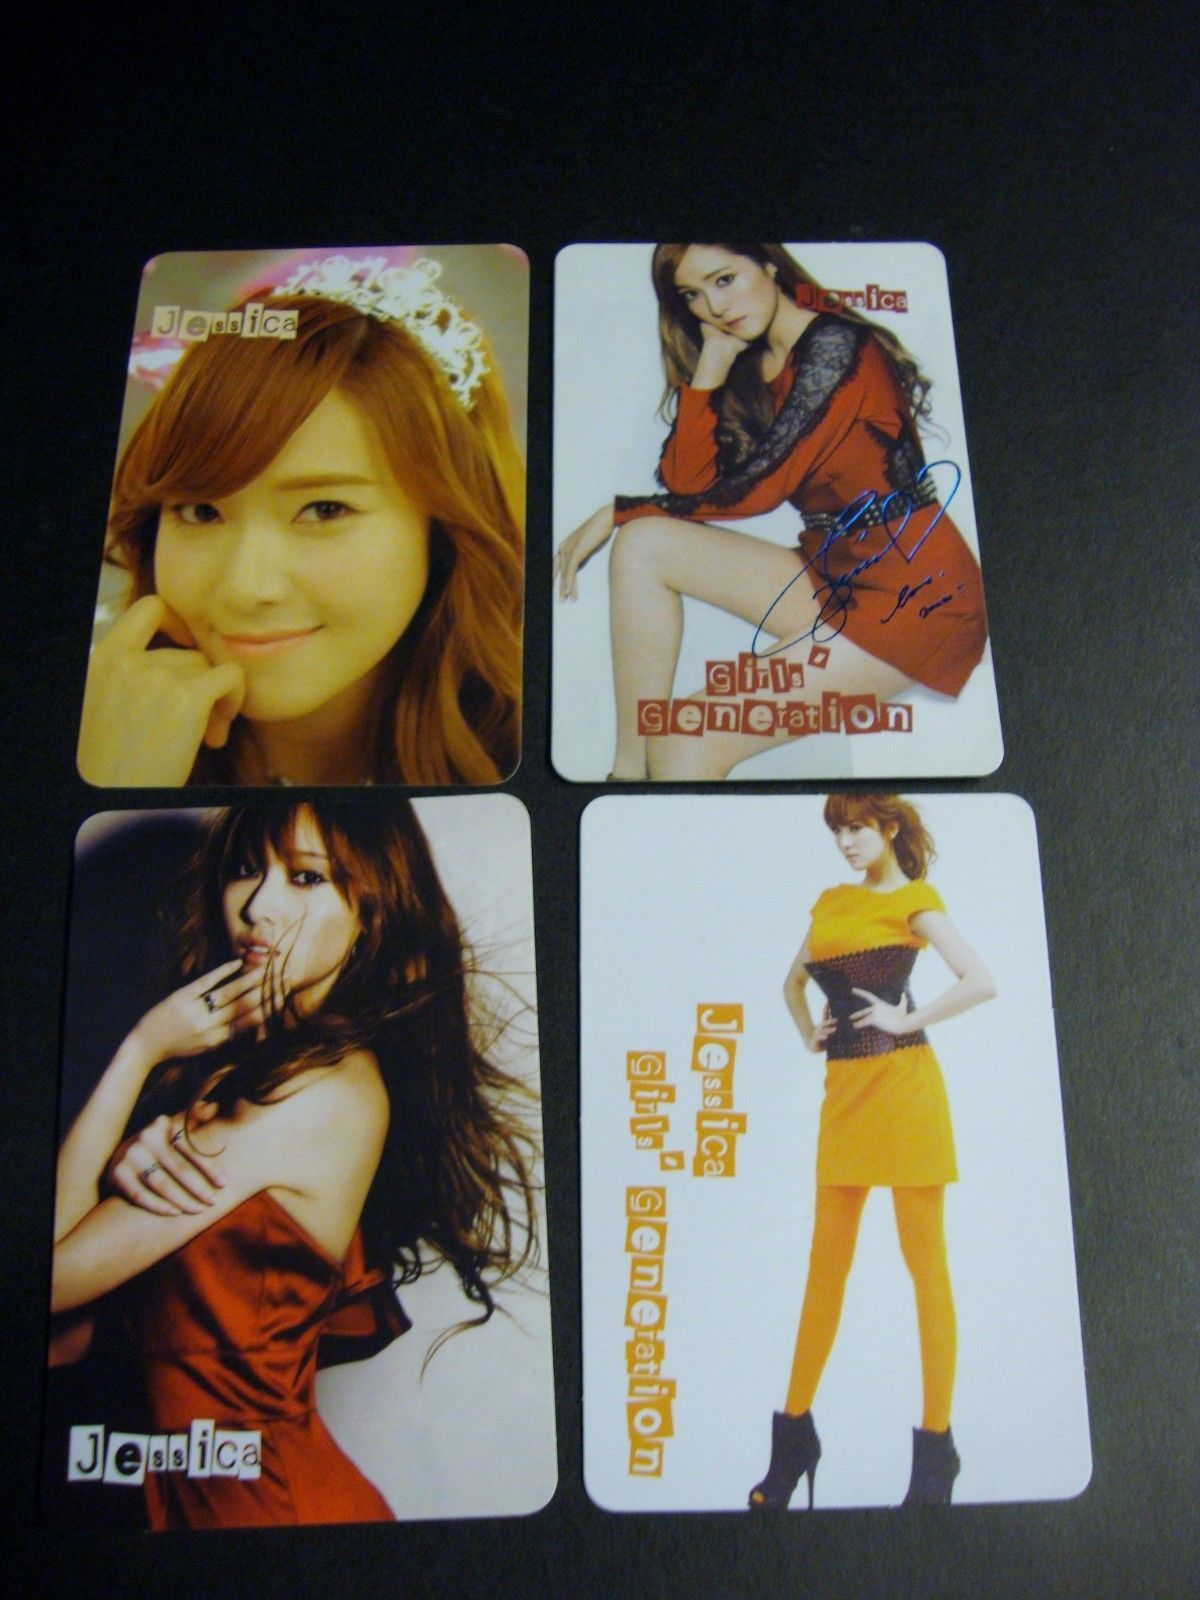 Jessica Girls Generation SNSD 4 pocket photo cards K-POP printed autograph